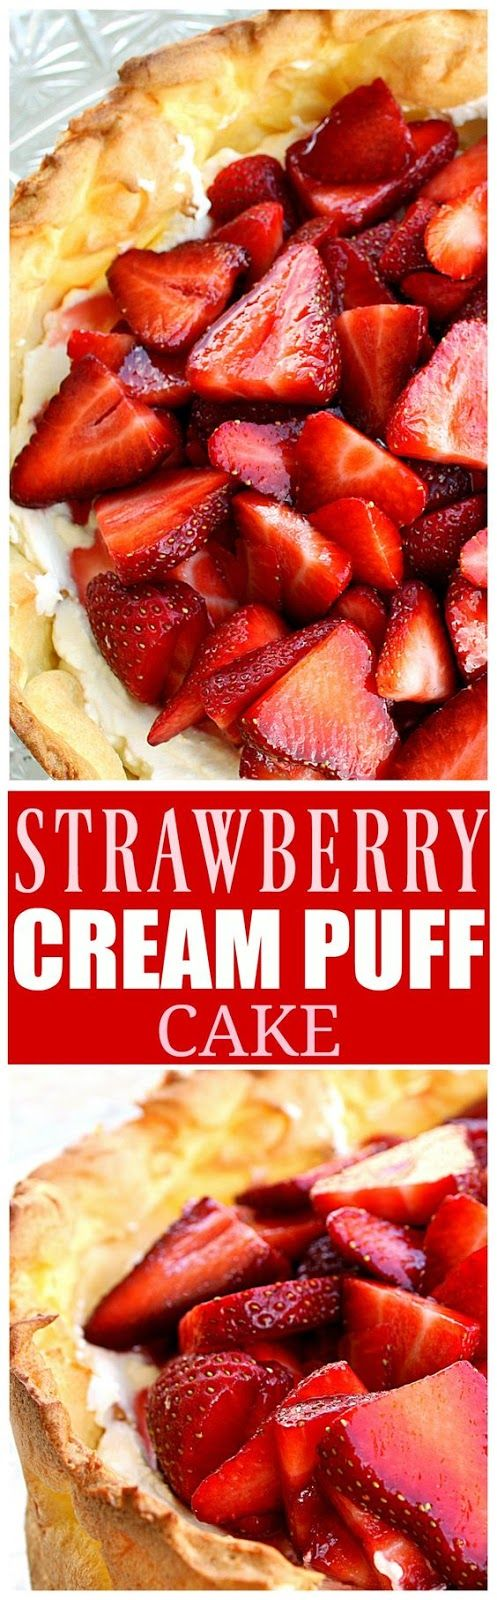 Strawberry Cream Puff Cake | Food And Cake Recipes